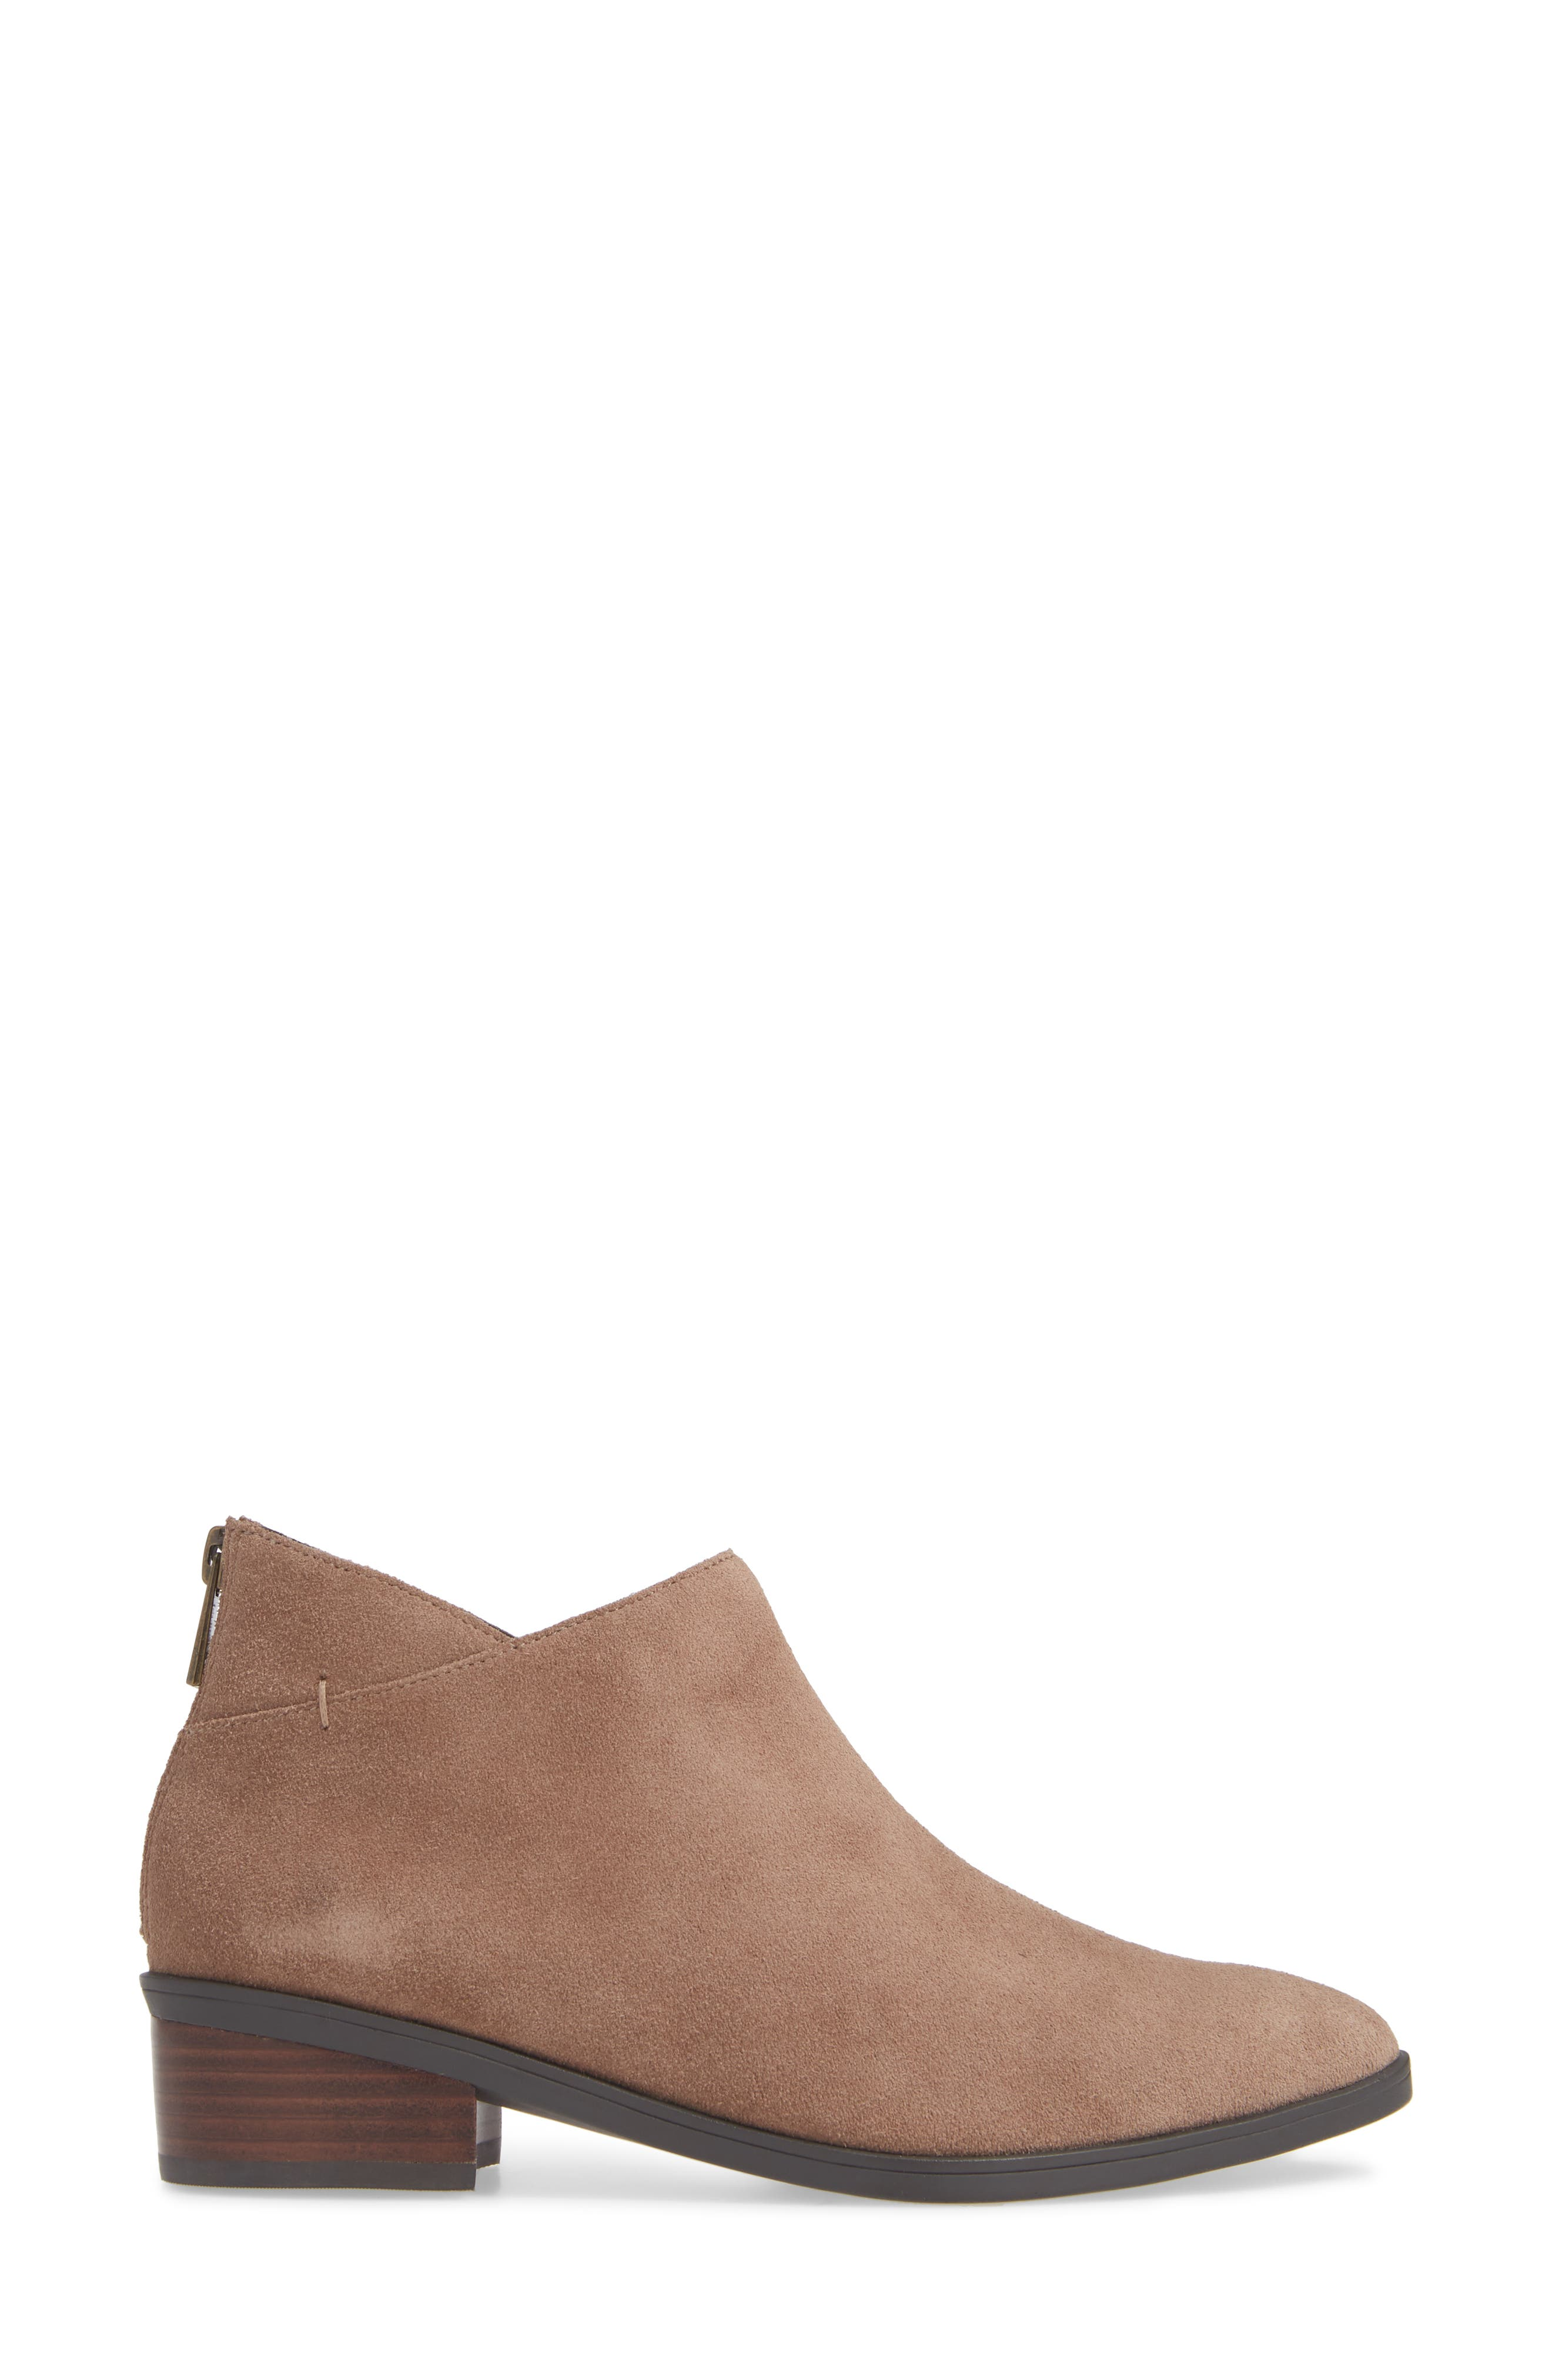 Haven Ankle Bootie,                             Alternate thumbnail 3, color,                             ALMOND SUEDE